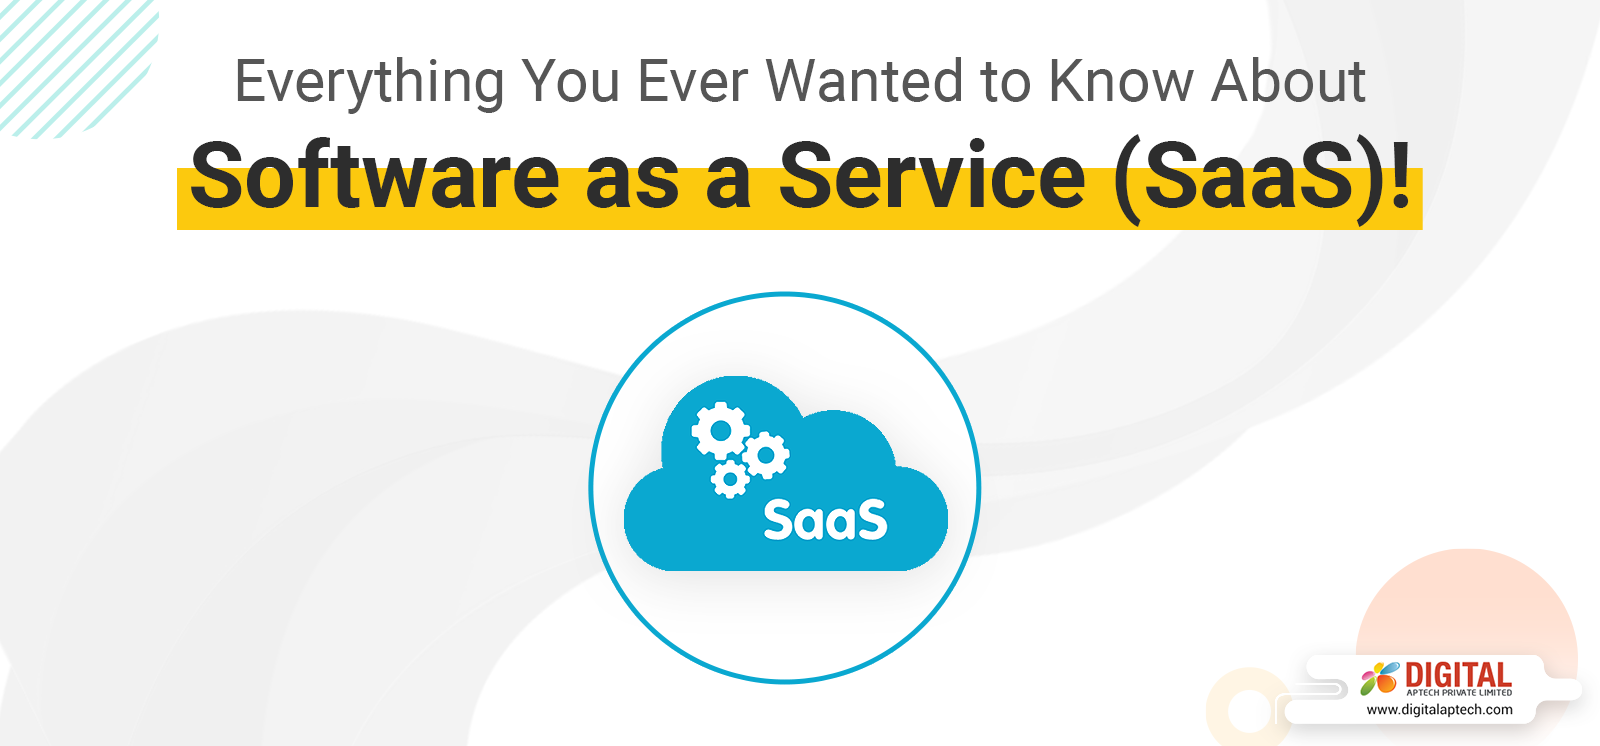 Everything You Ever Wanted to Know About Software as a Service (SaaS)!